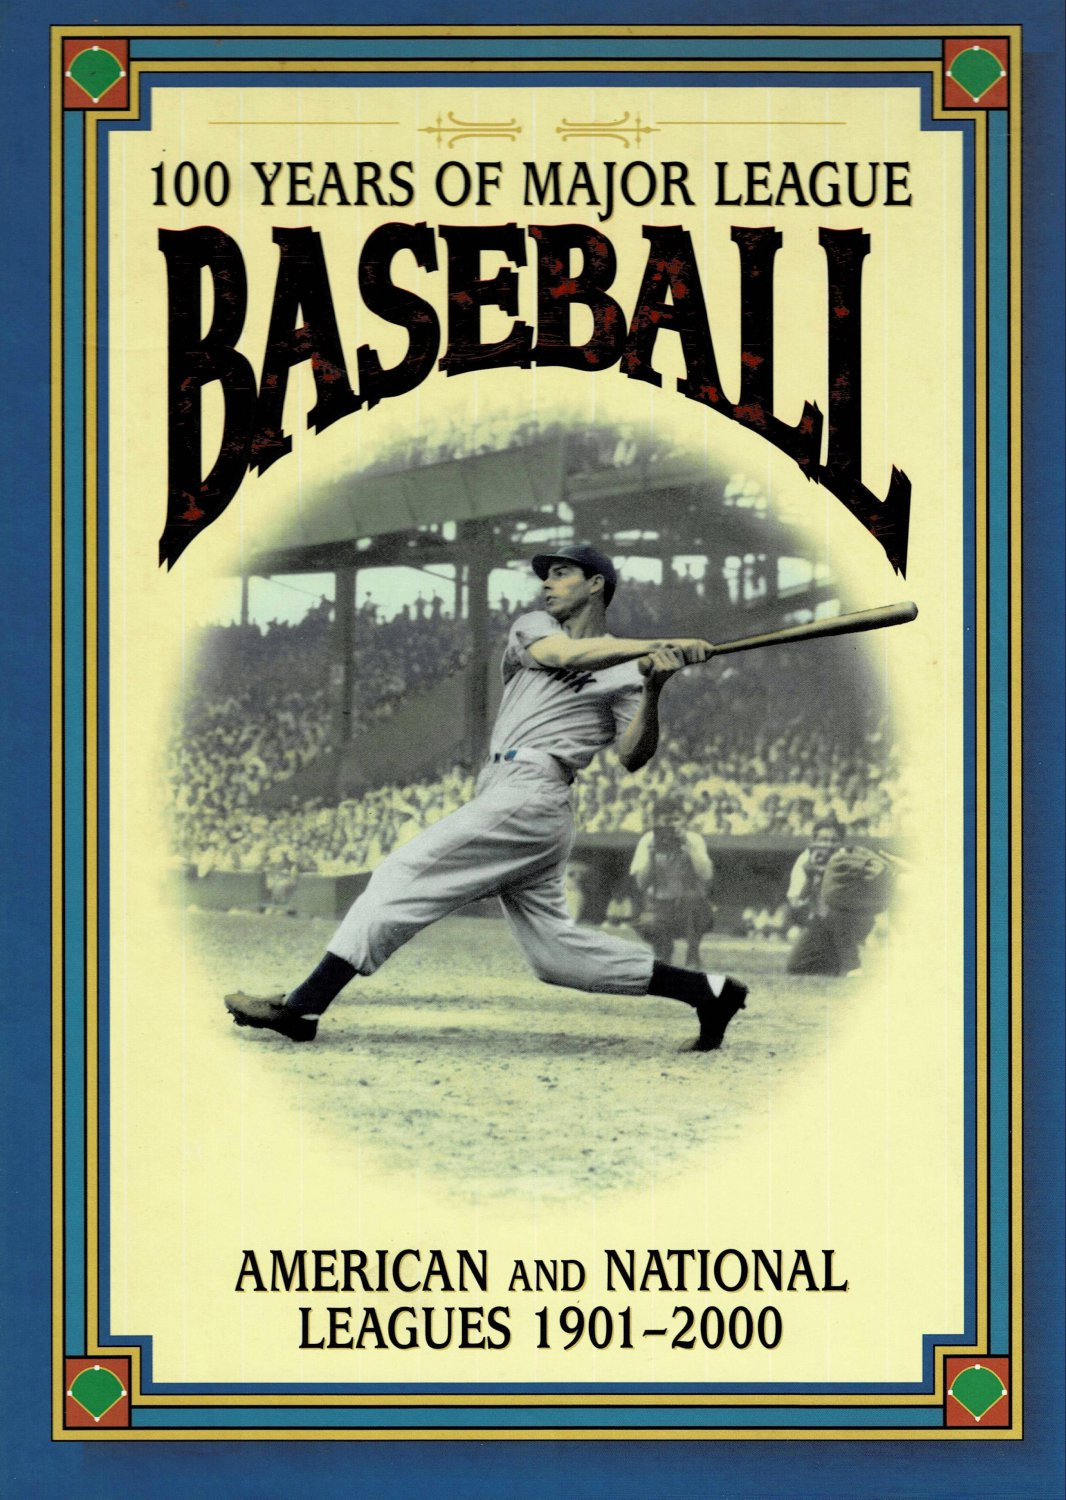 100 Years of Major League Baseball 1901-2000 By David Nemec Large Hardcover Book